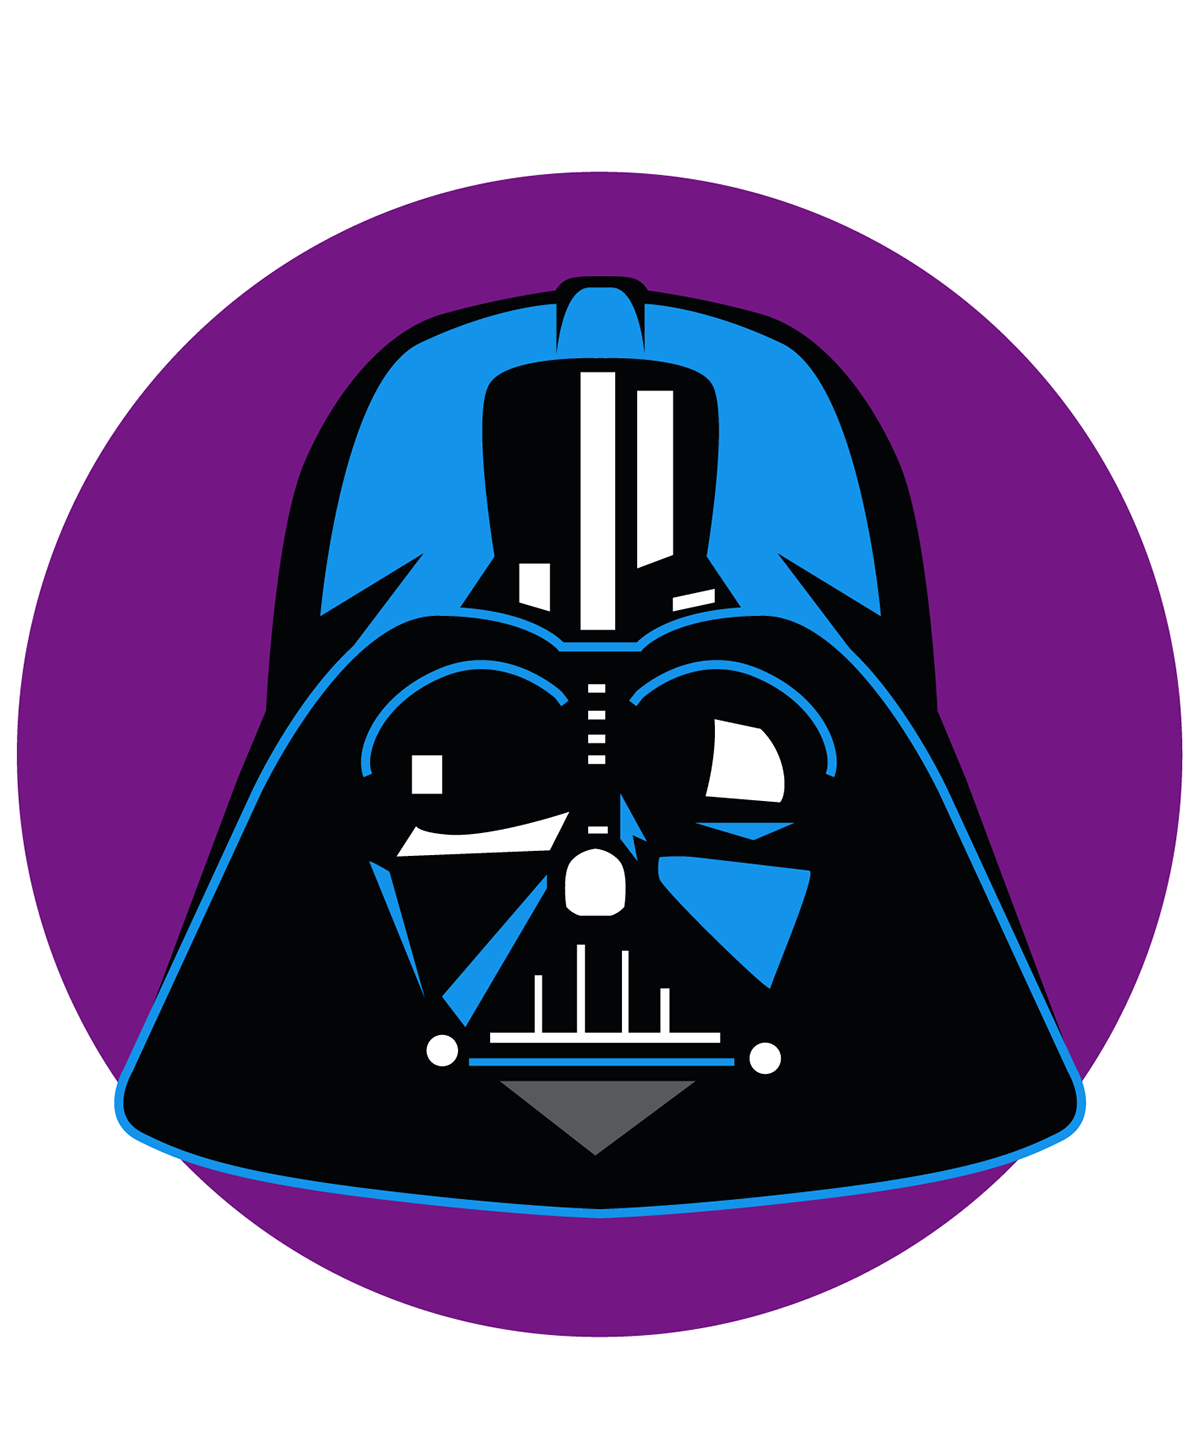 Star wars baby clipart vector free library Star Wars Darth Vader Clipart at GetDrawings.com | Free for personal ... vector free library